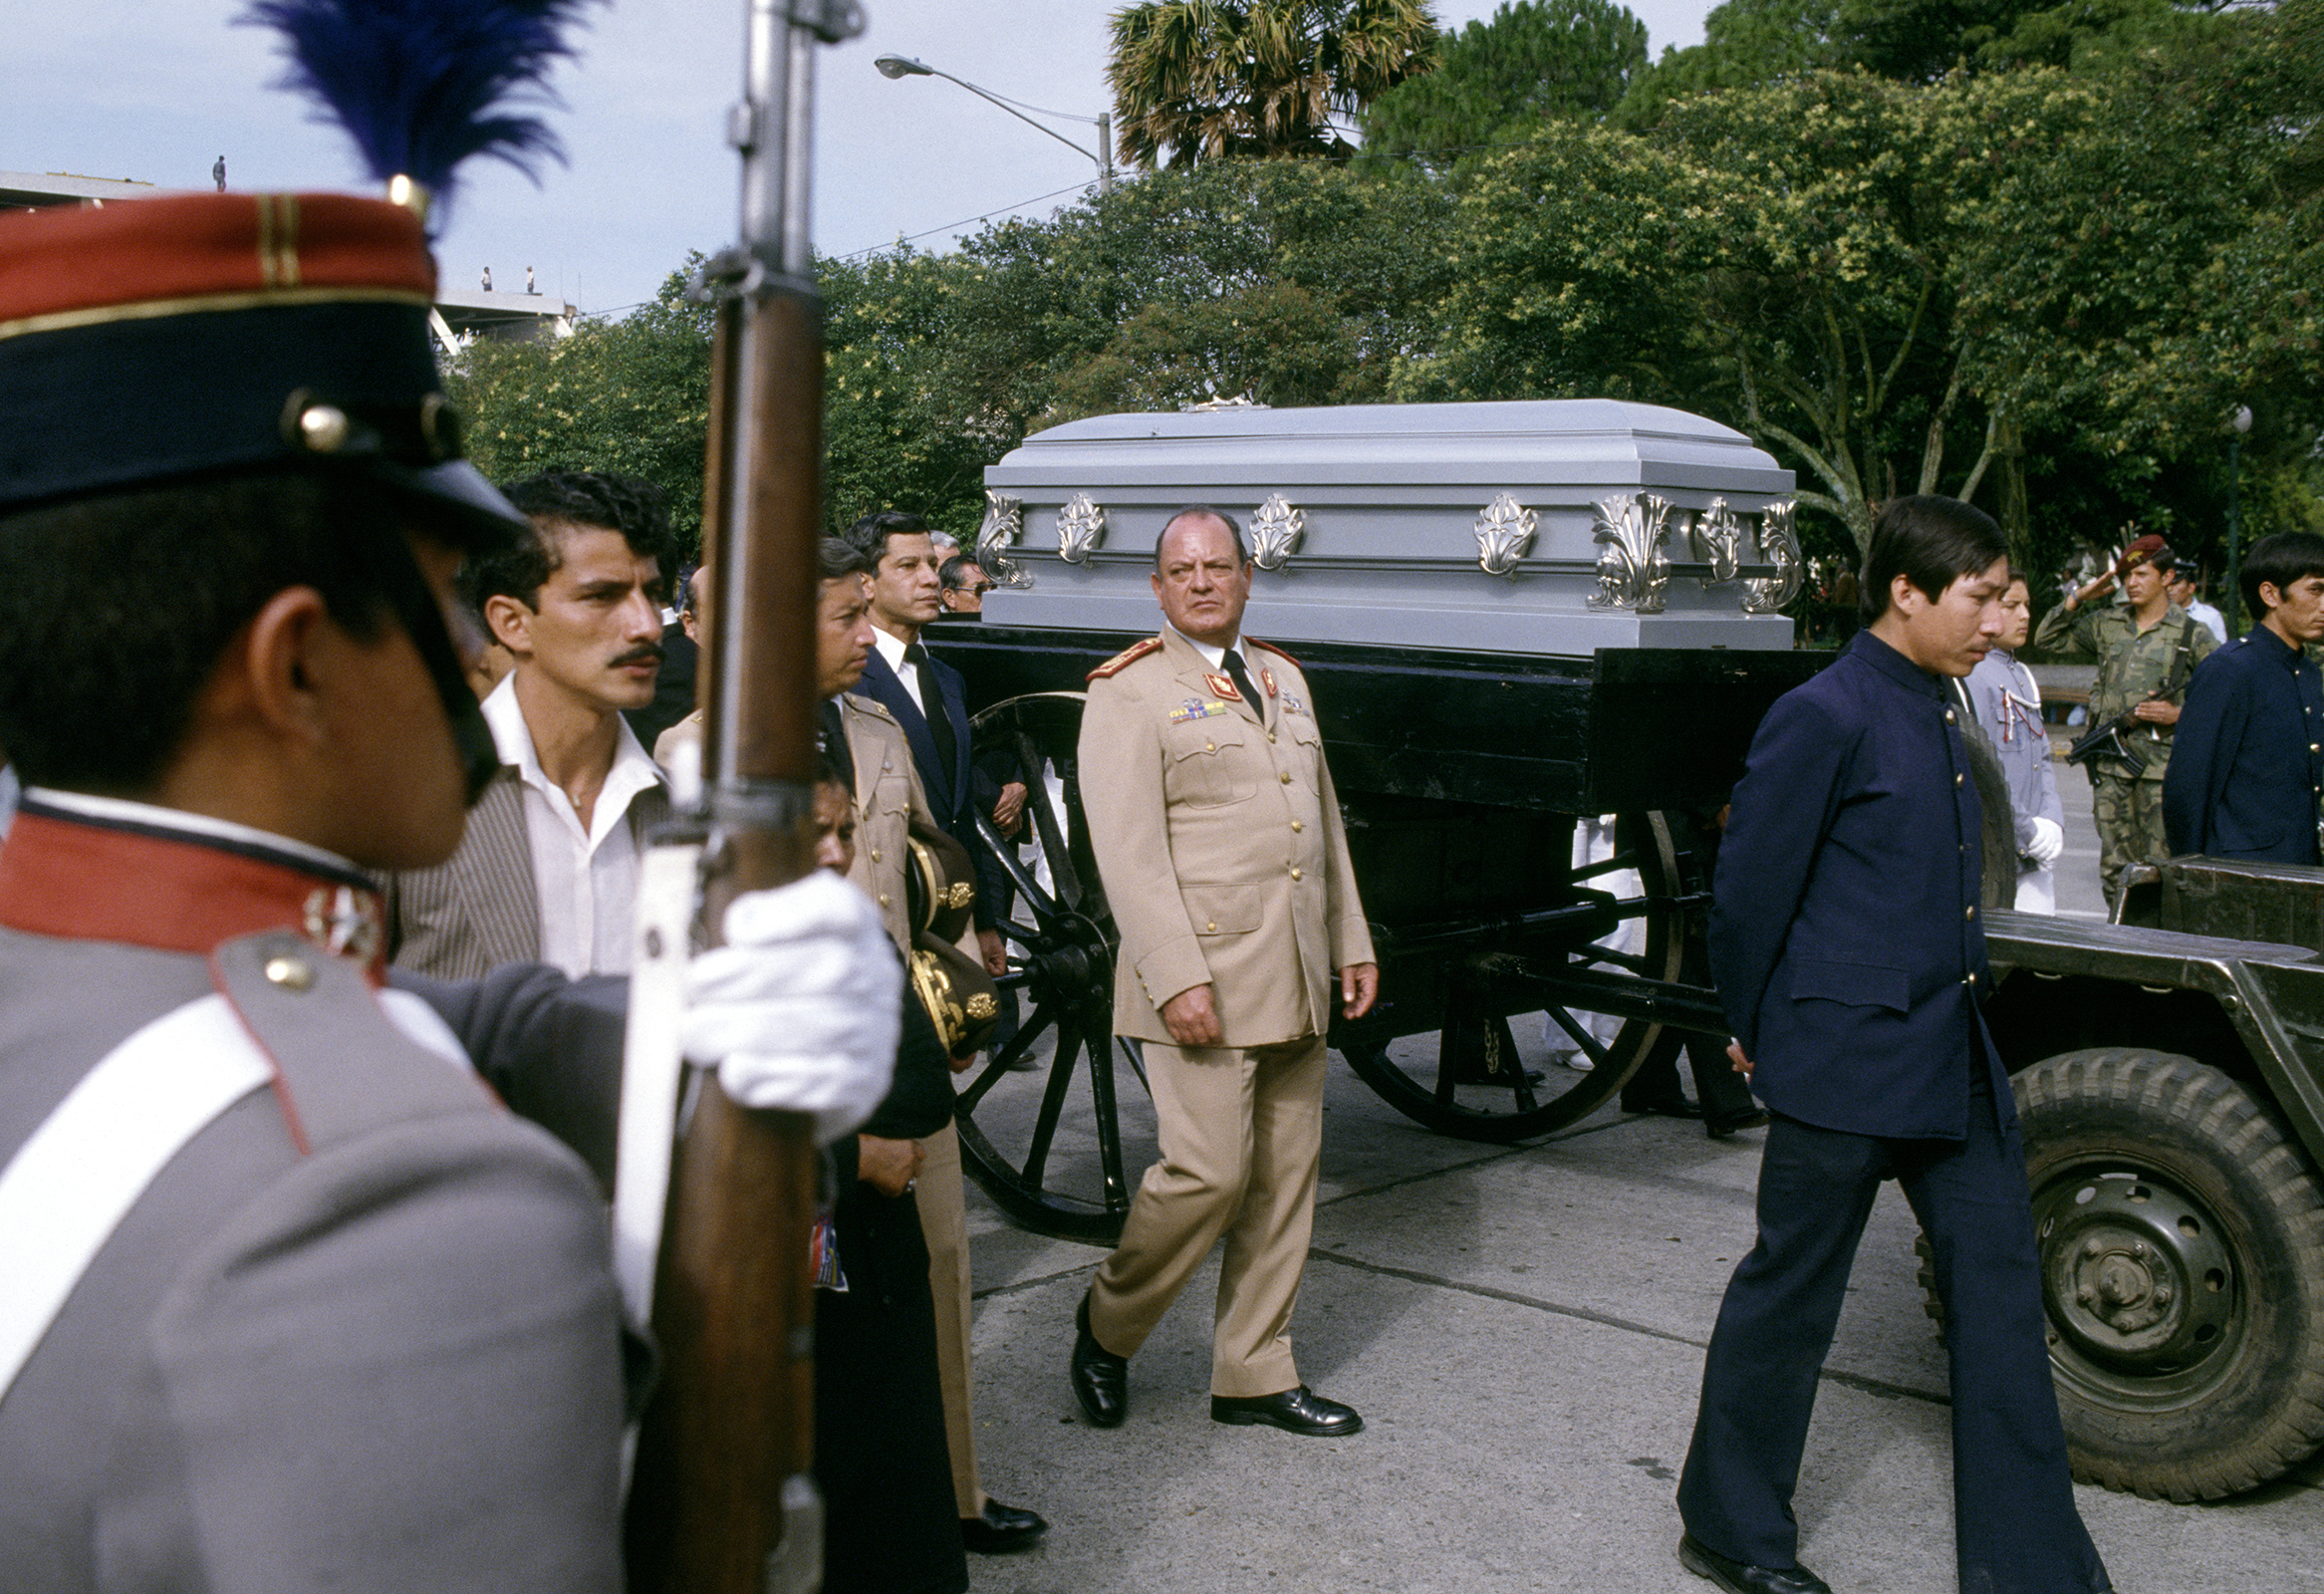 Guatemalan Defense Minister Brigadier General Óscar Mejía Víctores, 1930-2016, center, walks along the casket of Cardinal Casariego, Archbishop of Guatemala, who died June 15, 1983 from a heart attack following the March 1983 visit of Pope John Paul ll to Guatemala. General Mejía Víctores deposed President and General Ríos Montt in a coup d'état on August 8, 1983. Mejía has since been indicted in both Spain and Guatemala on charges of genocide, as well as torture and crimes against humanity, for his rule as president in the internal armed conflict.